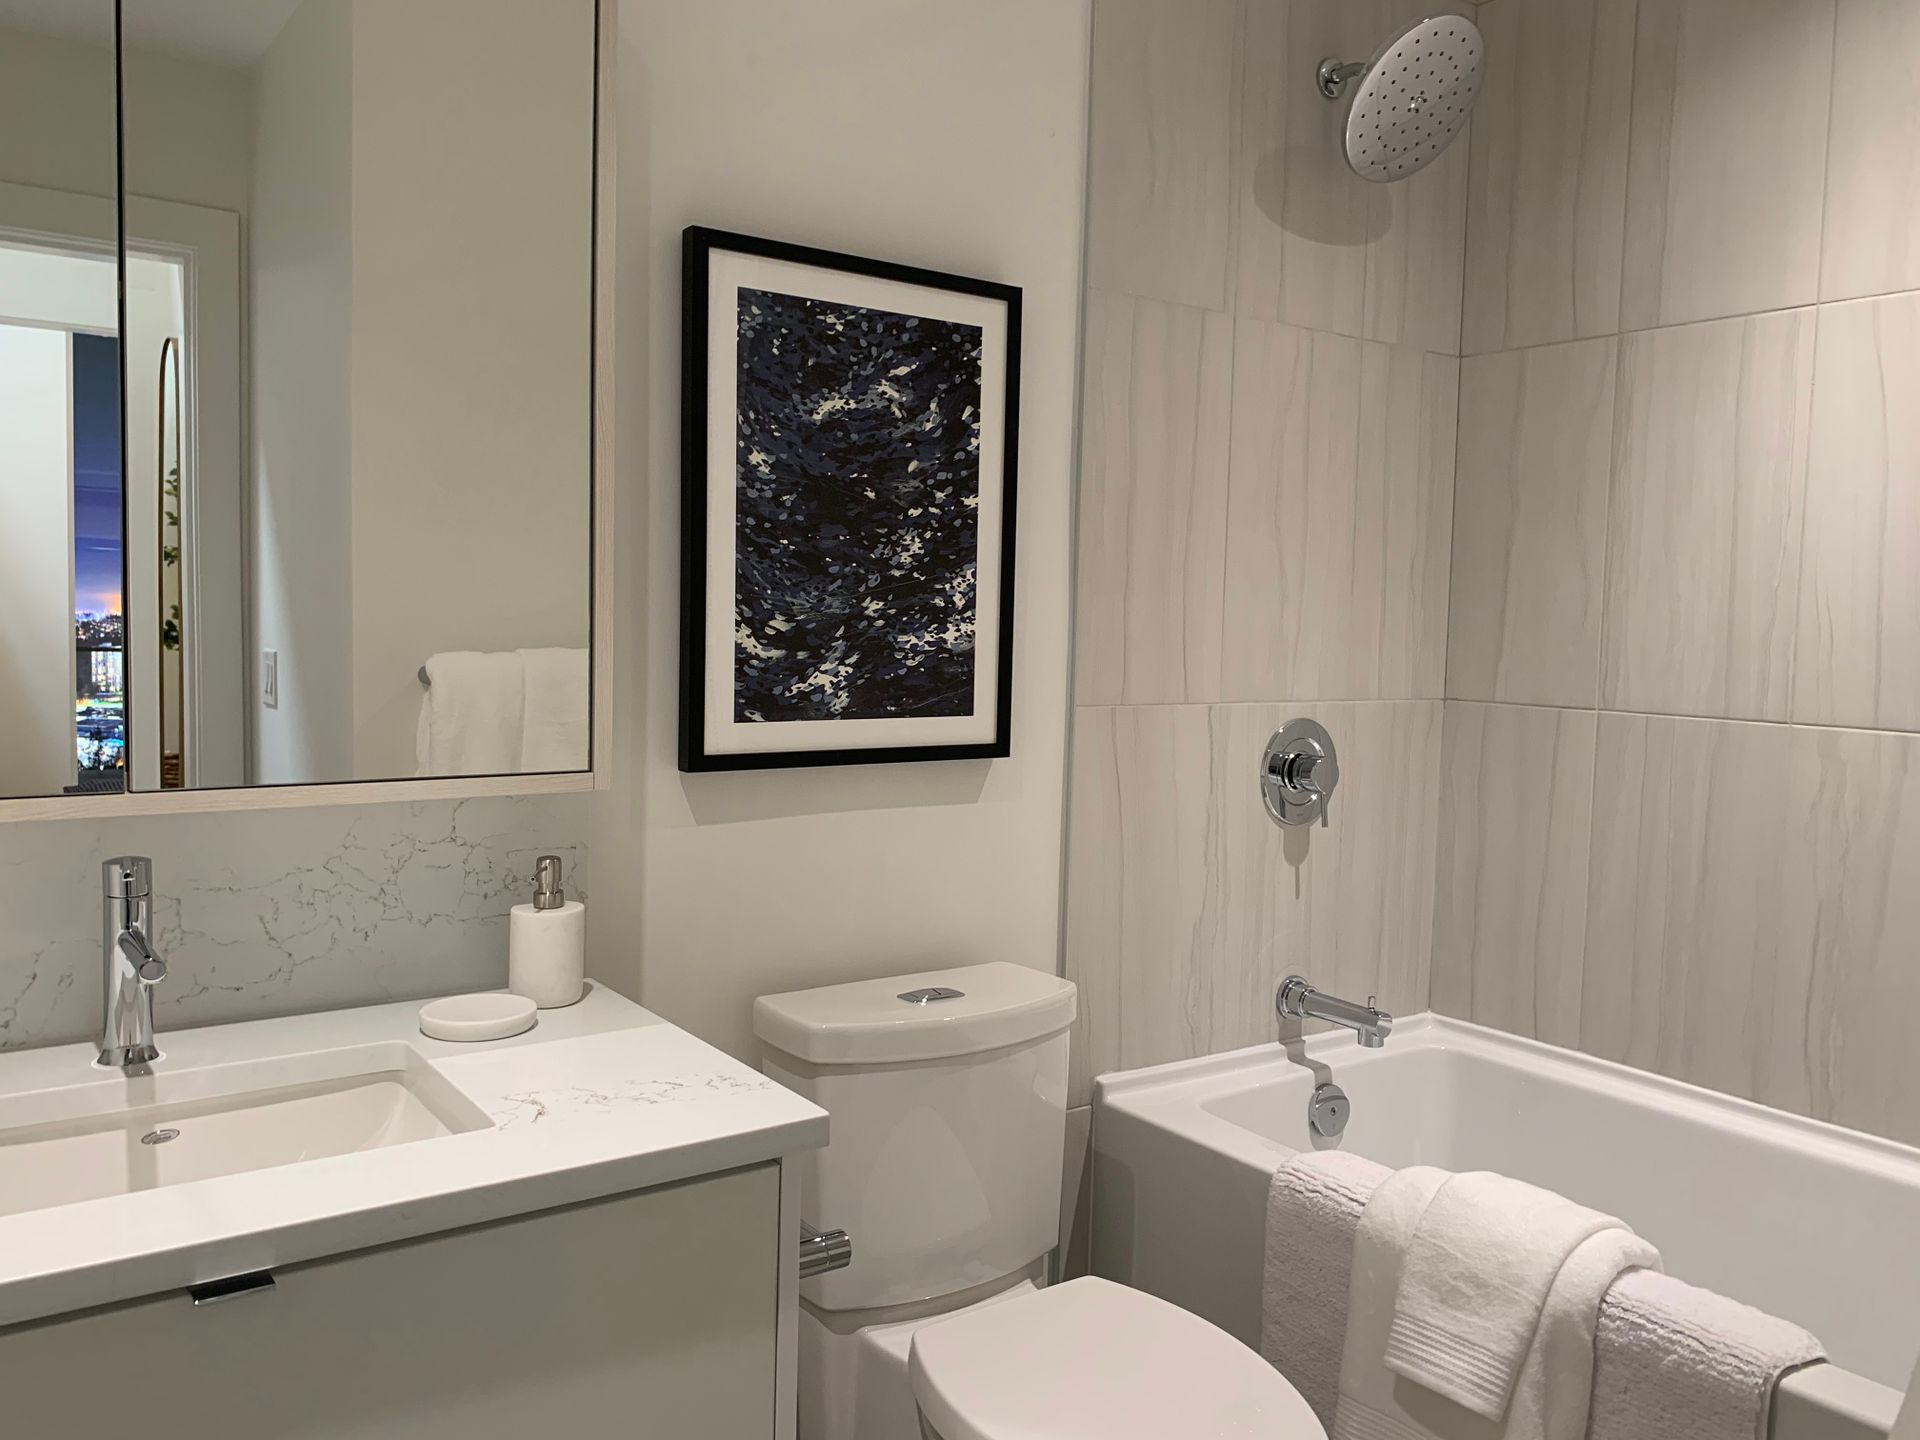 vue bathroom in bianca at Vue (638 Whiting Way, Coquitlam West, Coquitlam)